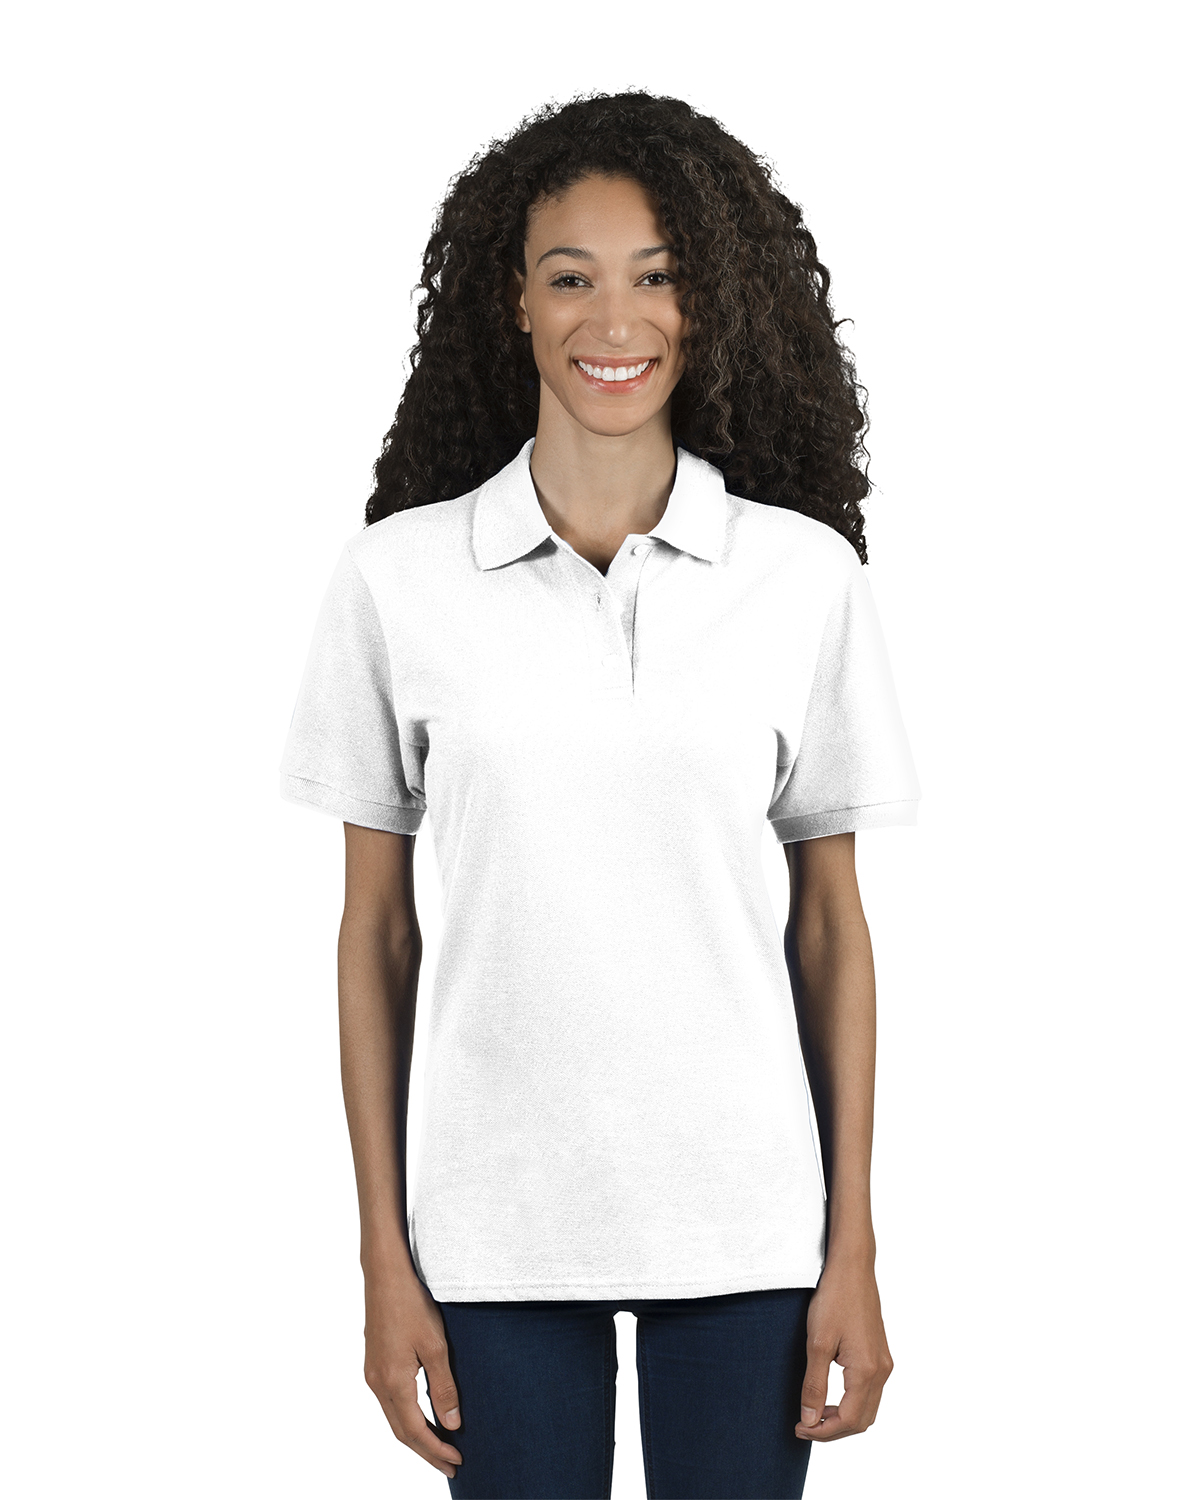 Ladies' 6.5 oz. Premium 100% Ringspun Cotton Piqué Polo